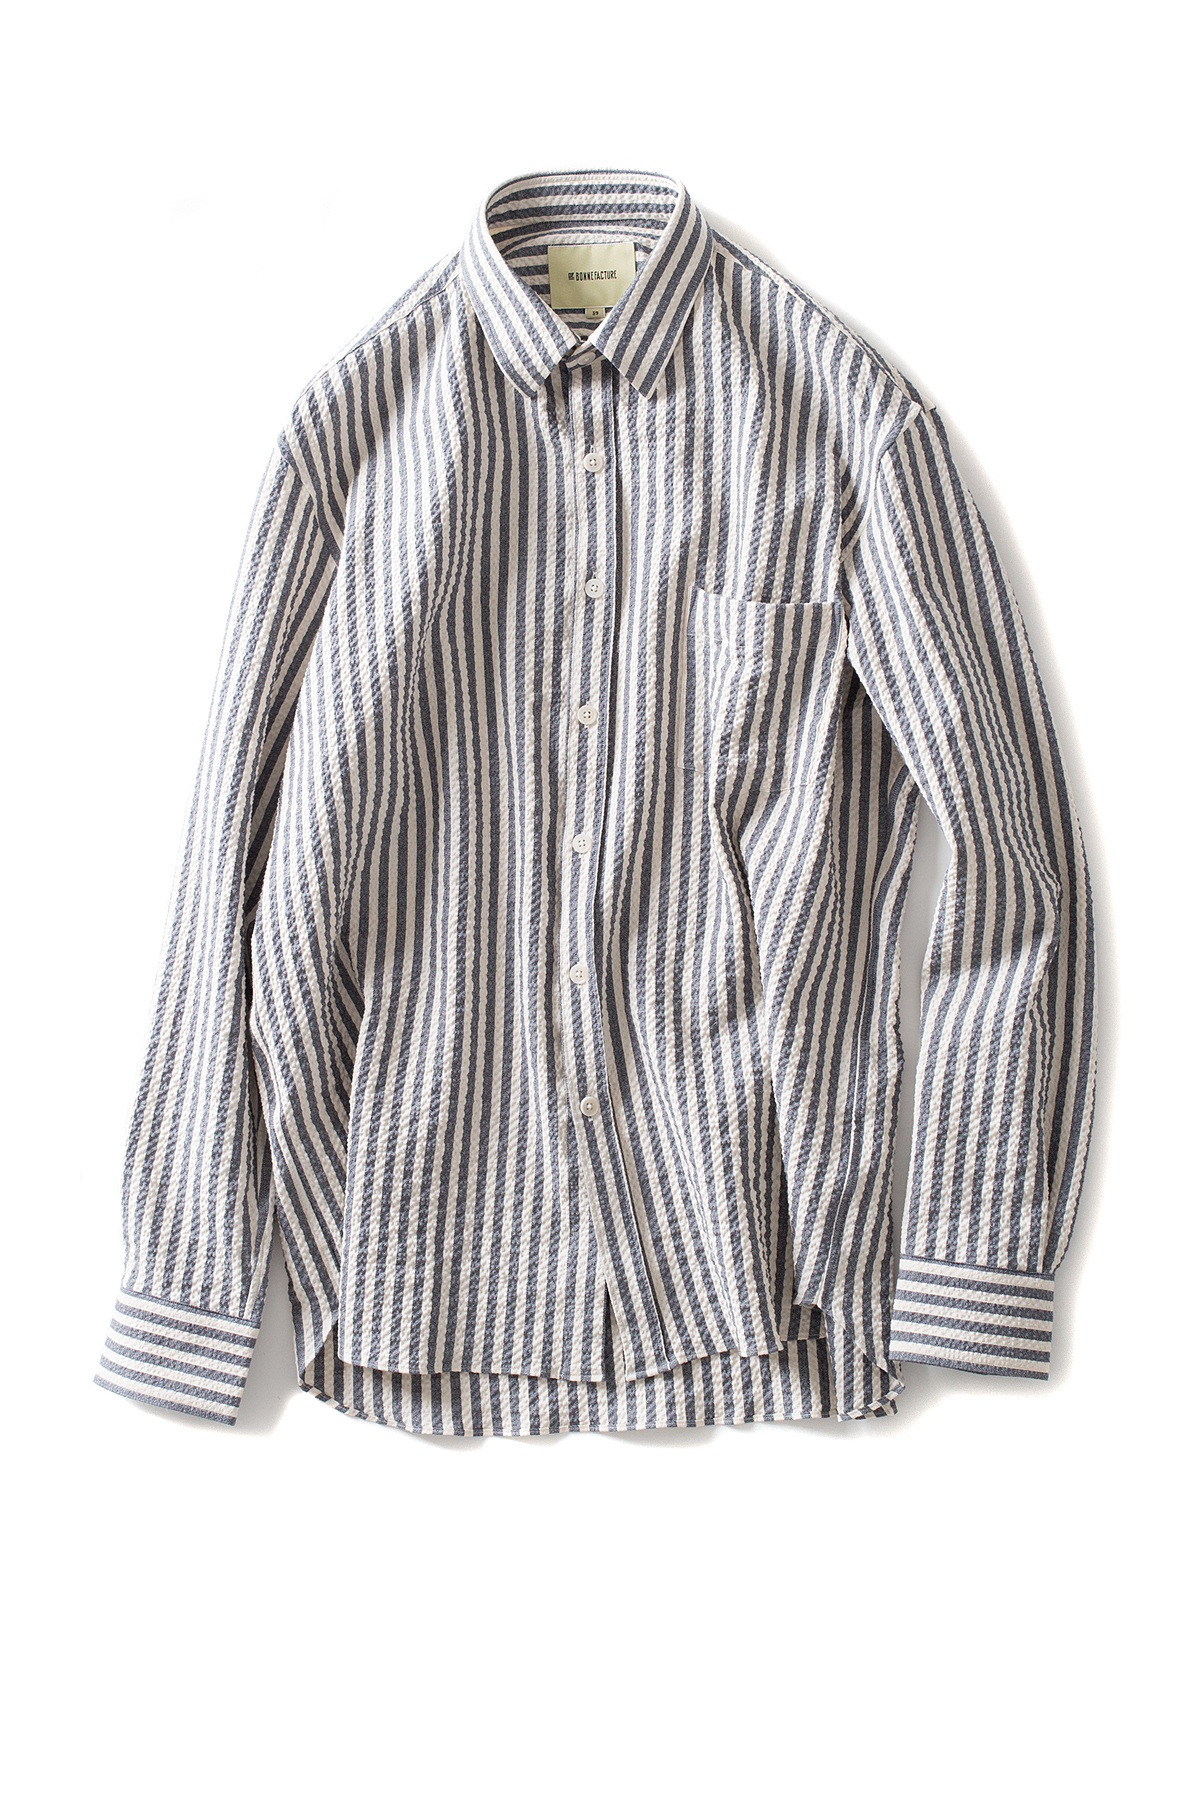 de bonne facture : Oversized Shirt (Blue x White)